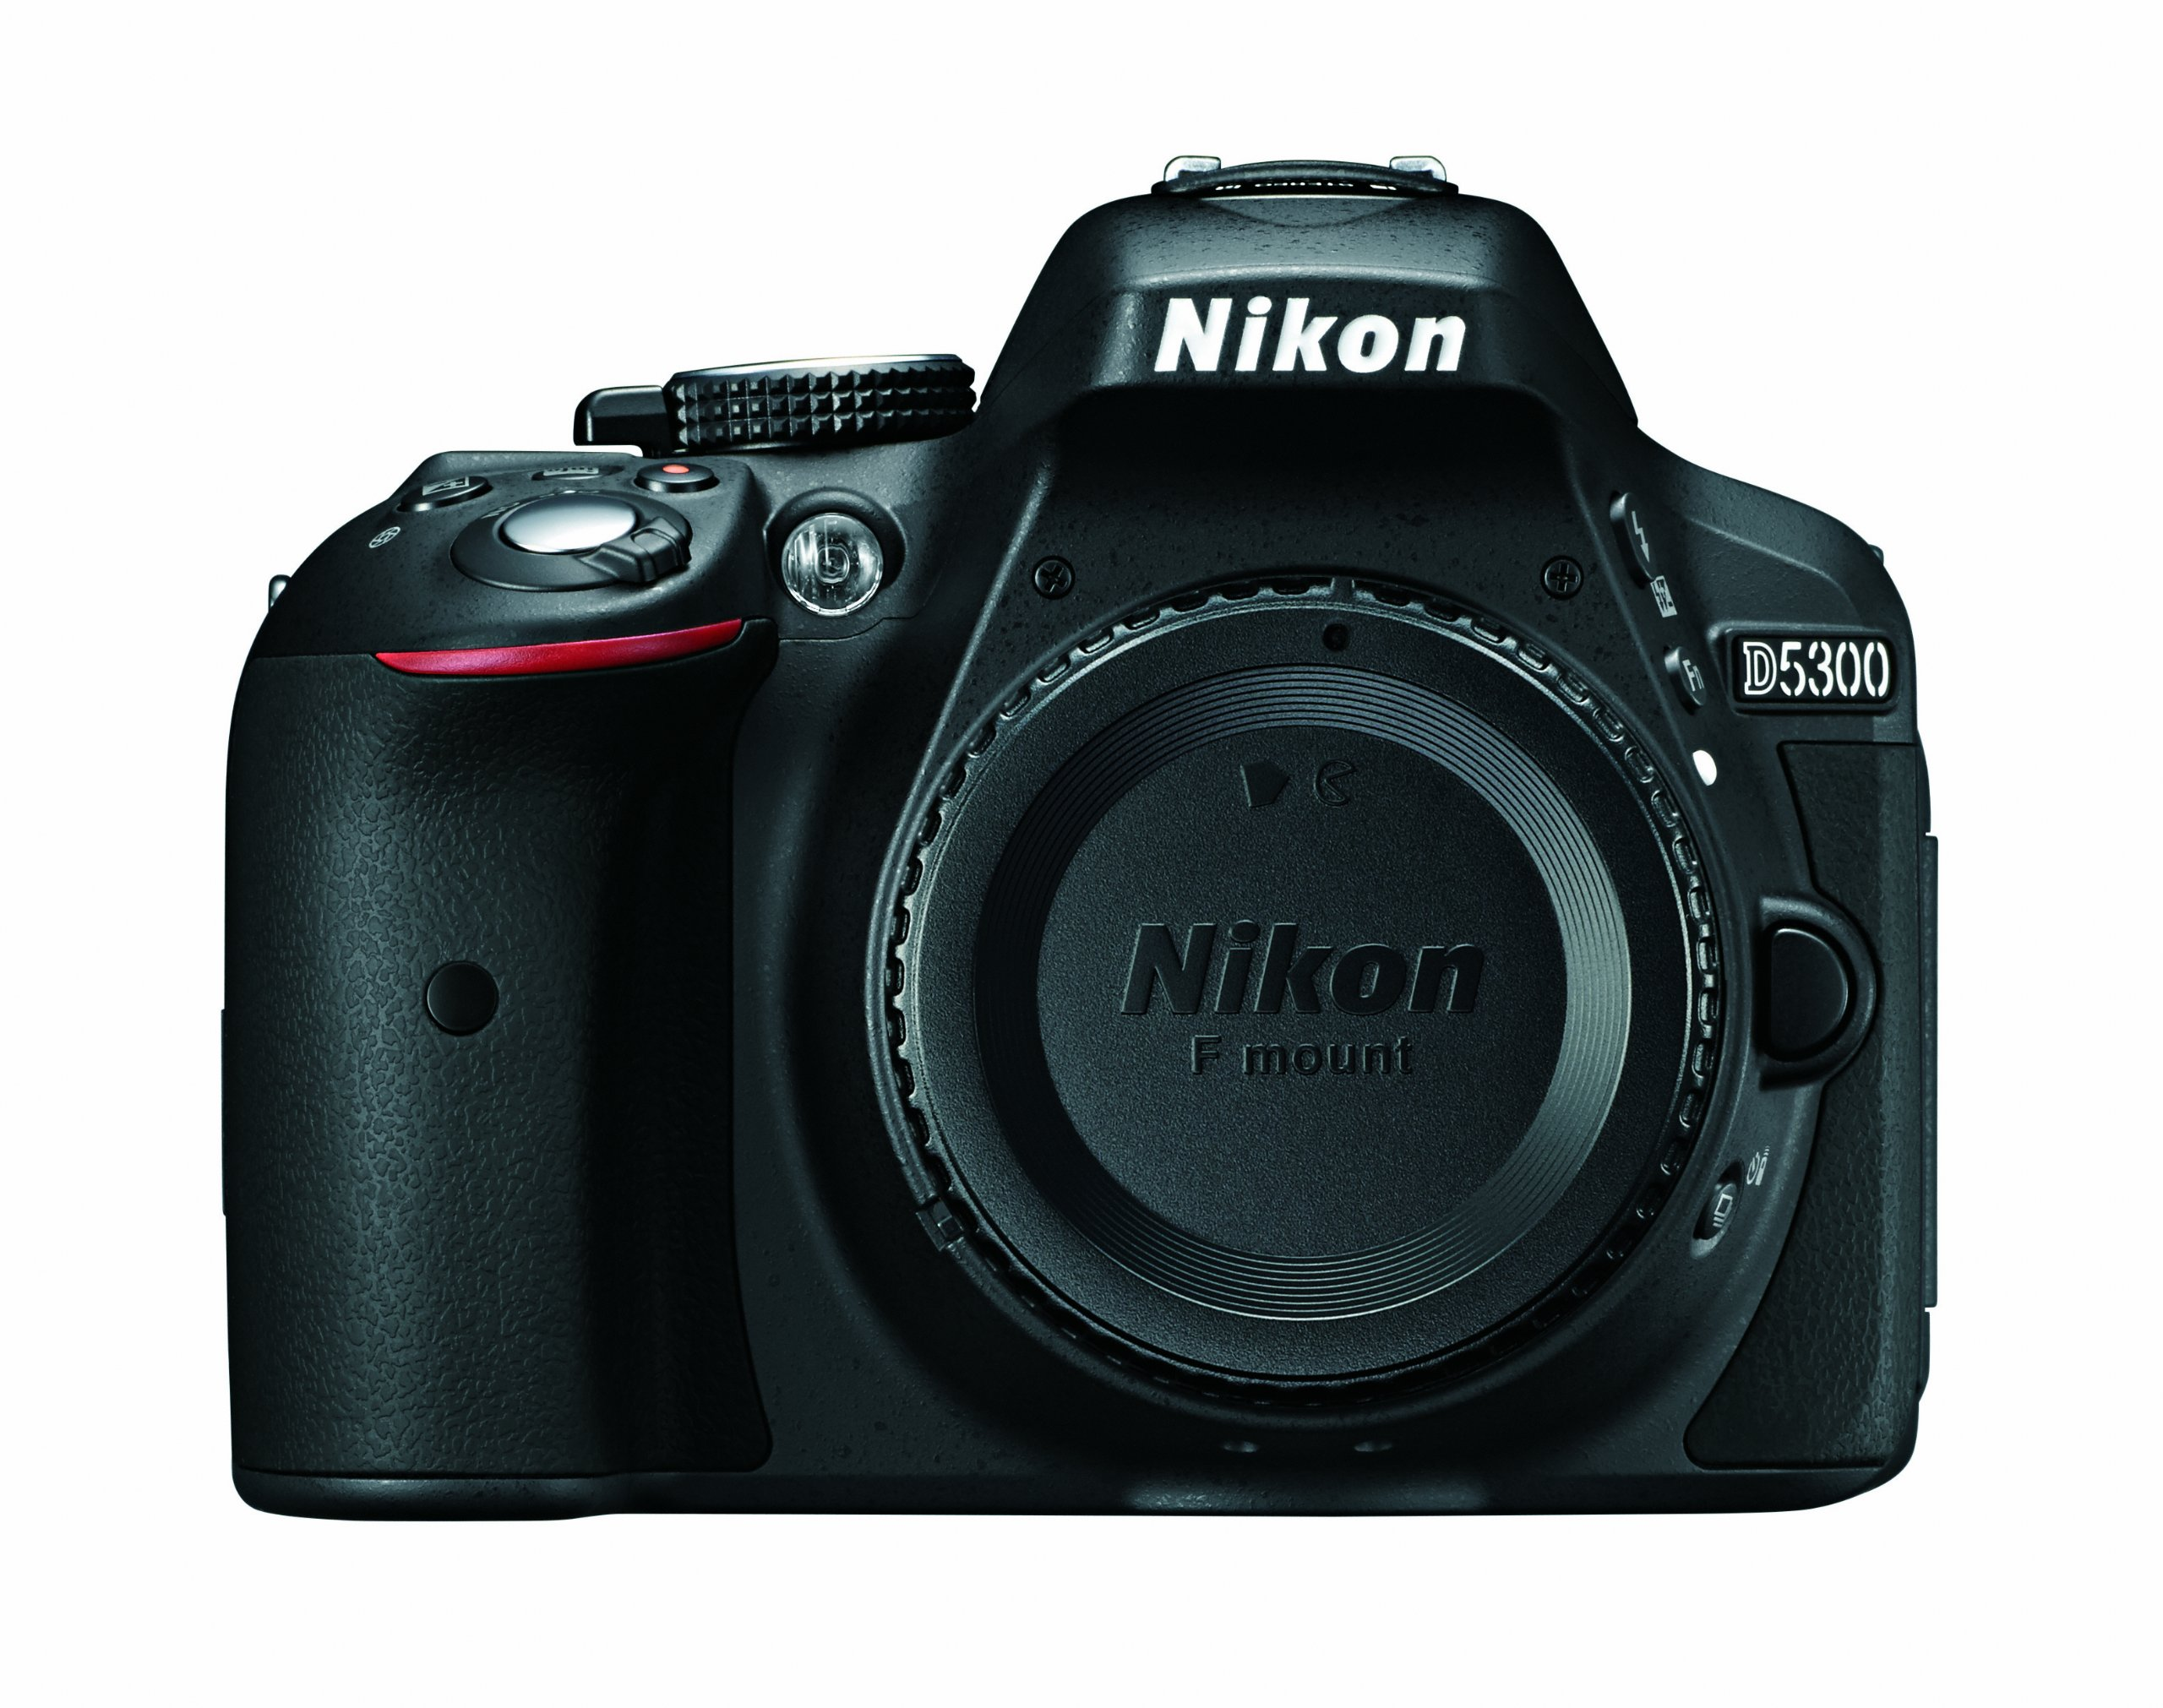 Nikon D5300 24.2 MP CMOS Digital SLR Camera with Built-in Wi-Fi and GPS Body Only (Black) by Nikon (Image #1)